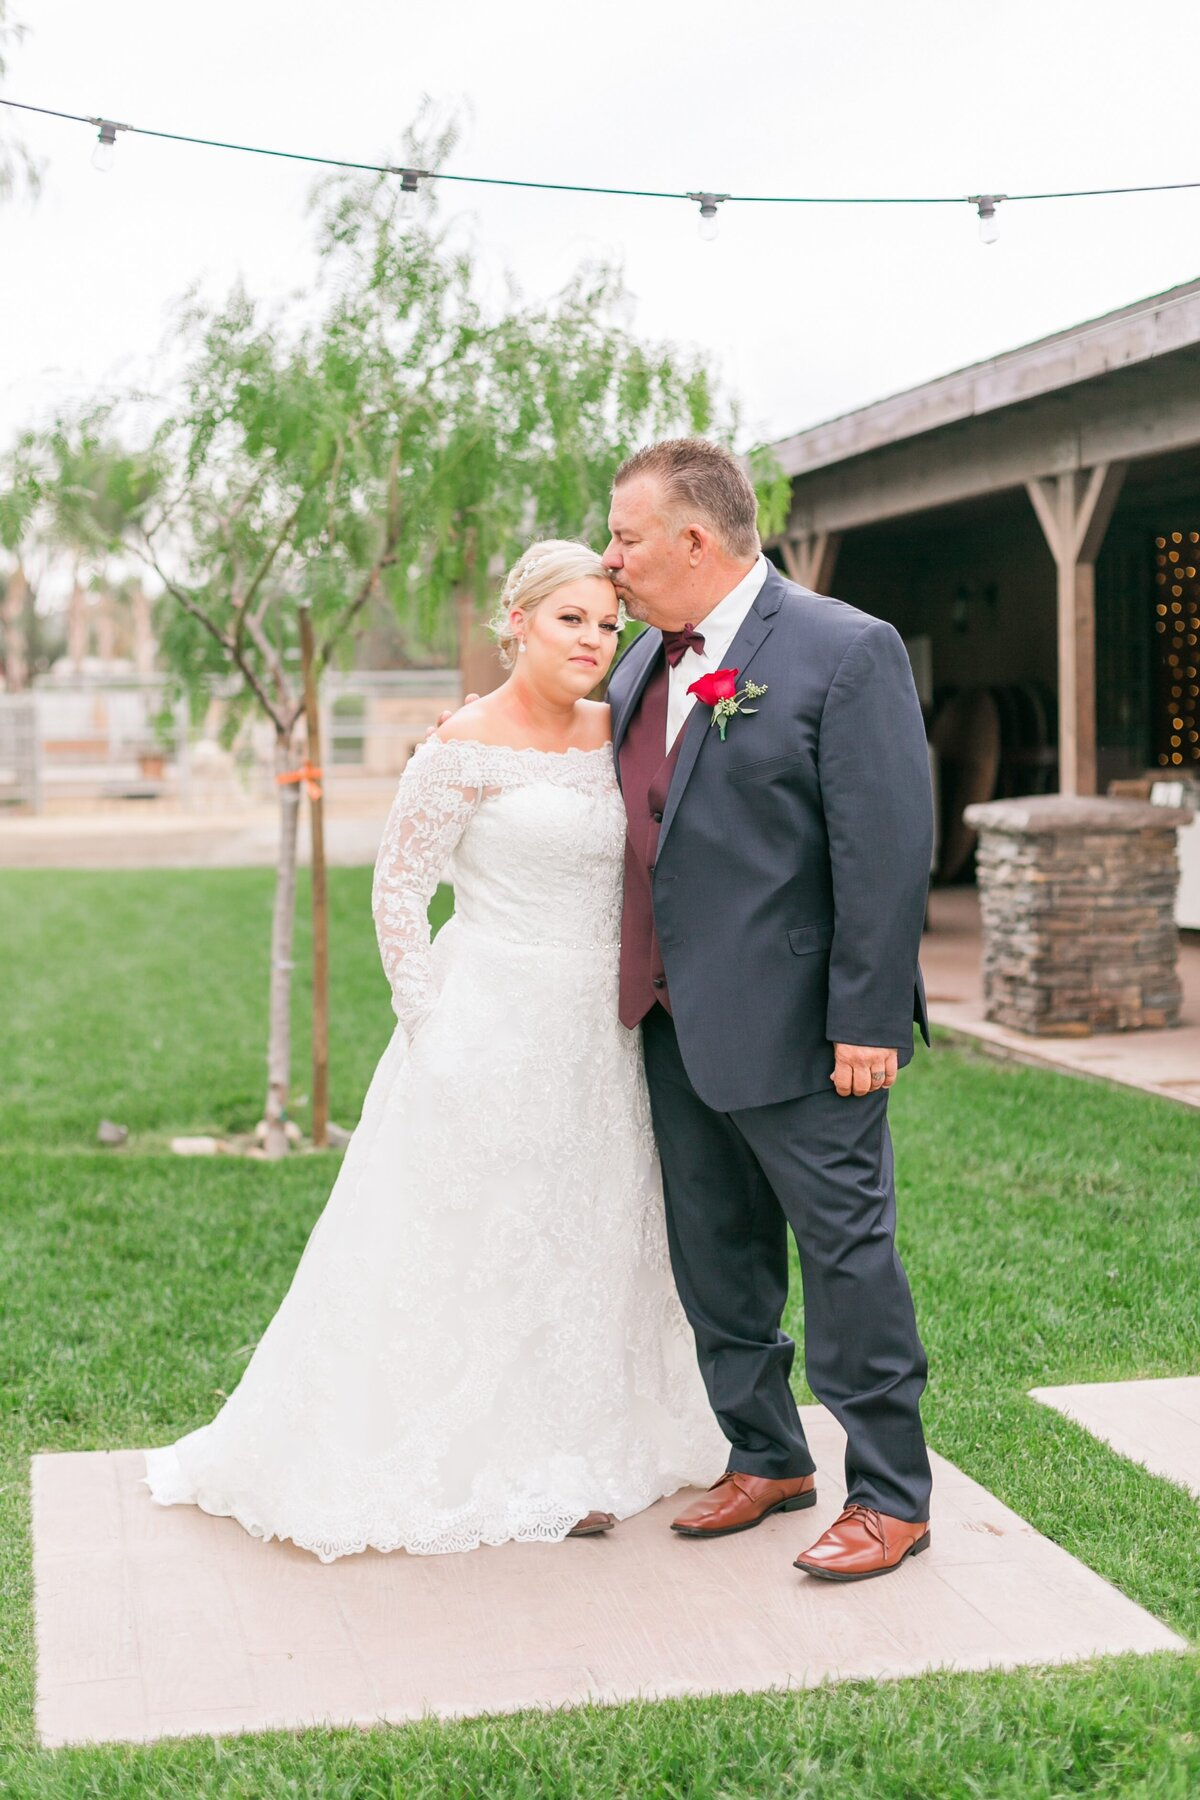 Kelli-Bee-Photography-Gallery-Farm-Southern-CA-Norco-Rustic-Wedding-Luxury-Lifestyle-Photographer-Lauren-Ben-0020